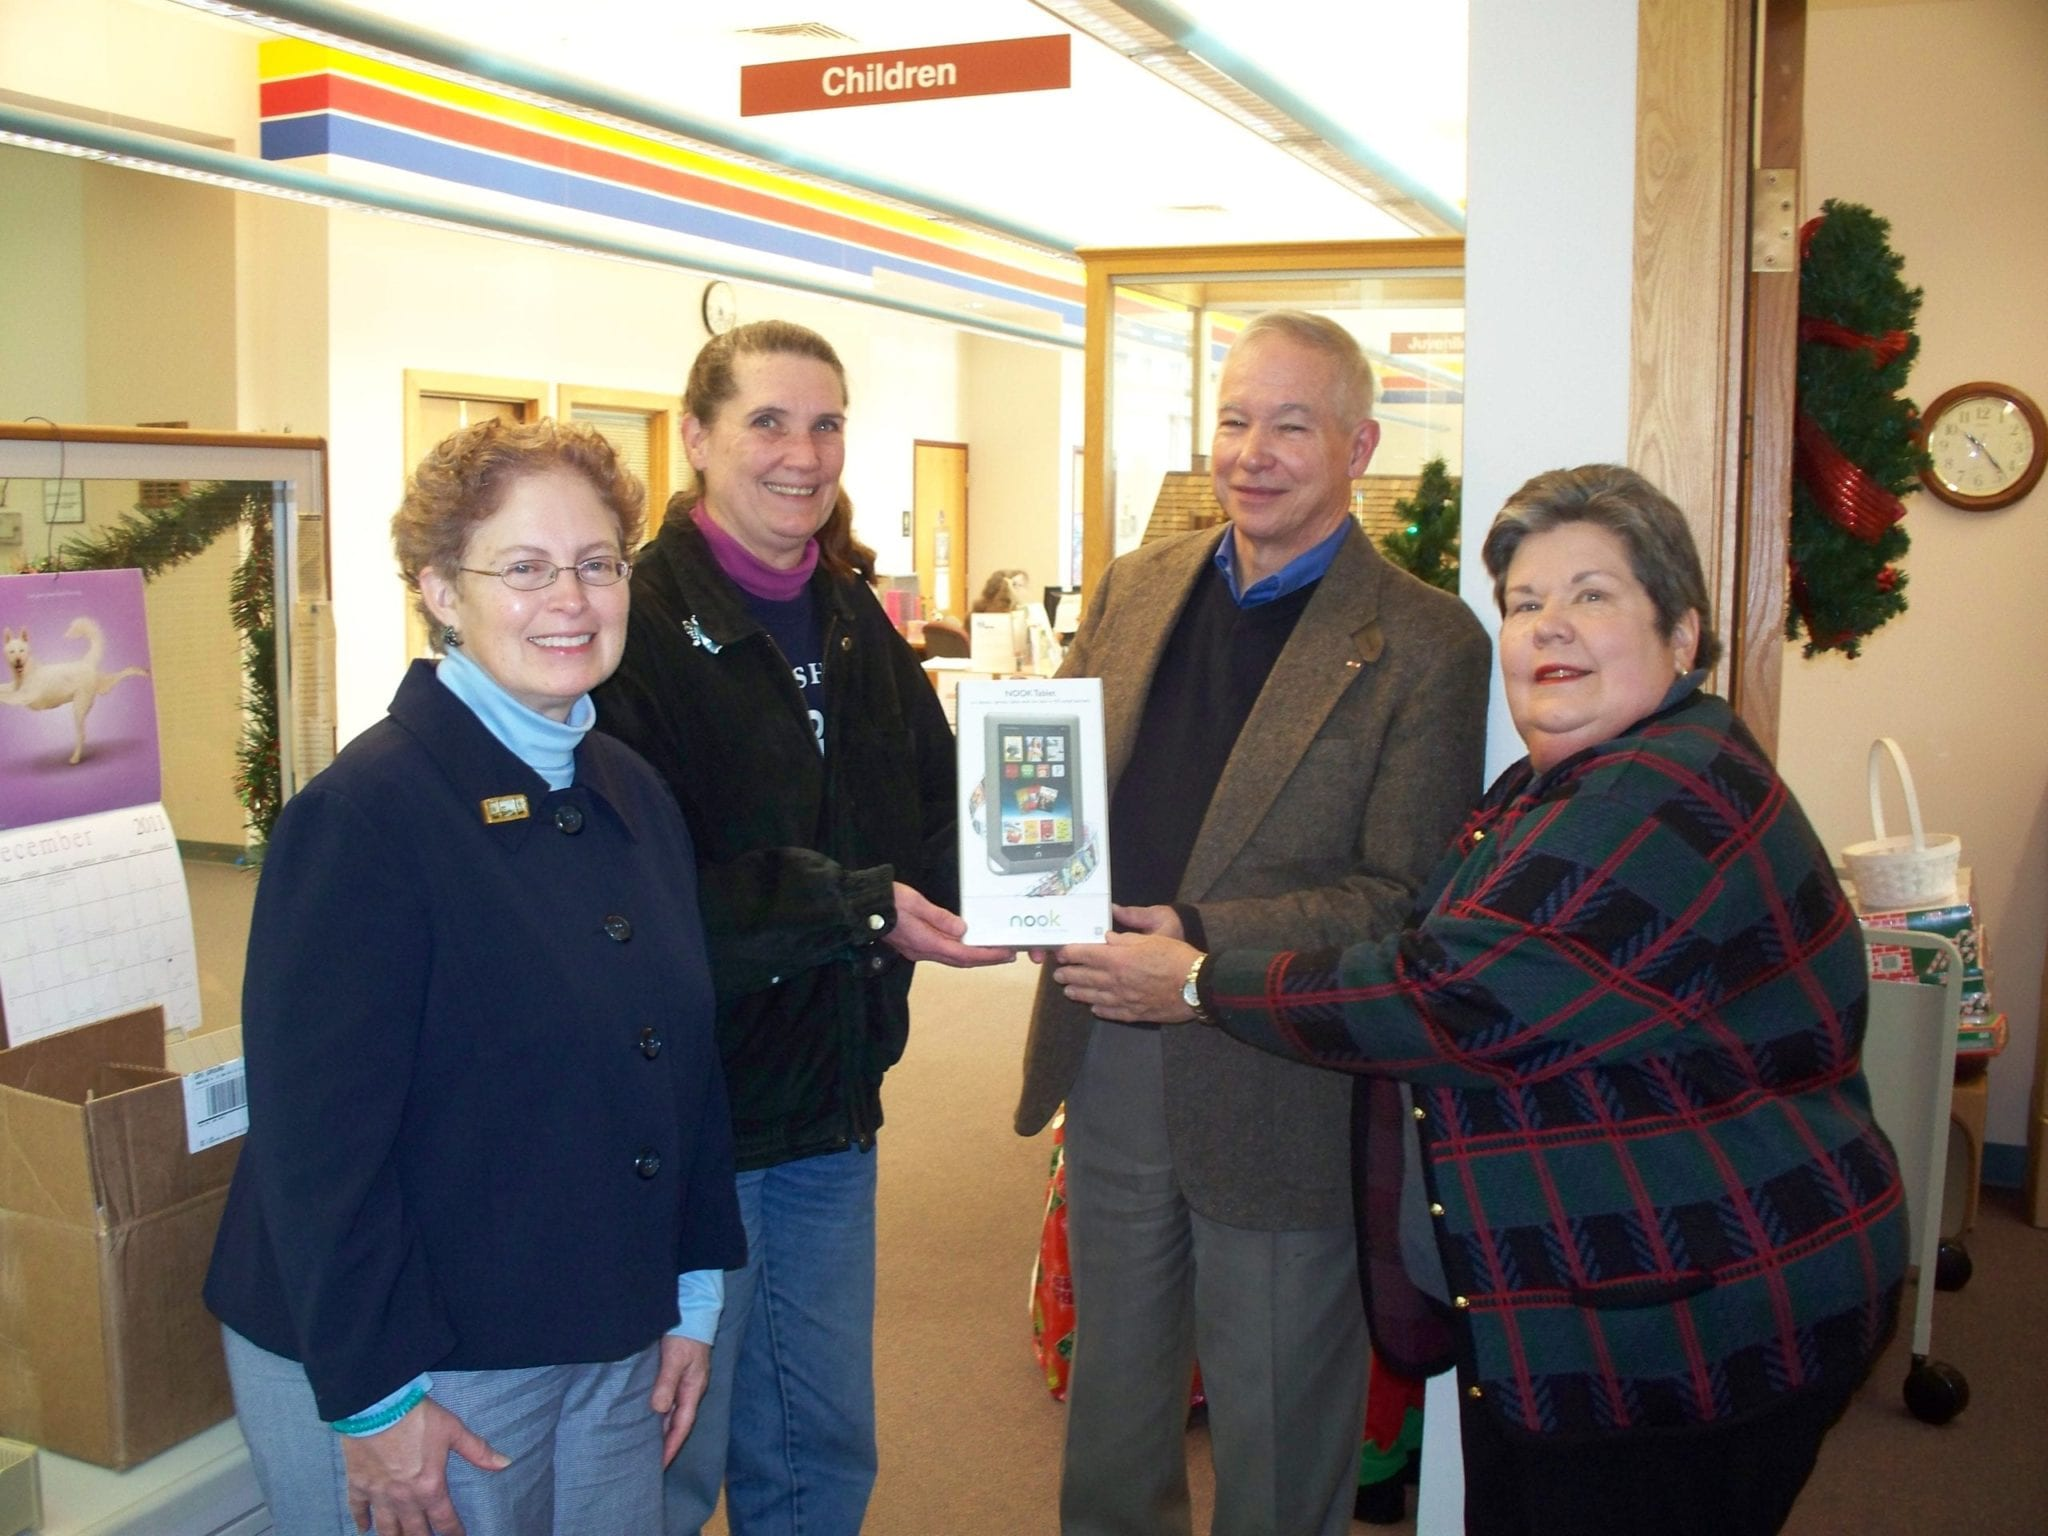 Nook winner chosen, B'ville Library fundraiser a success